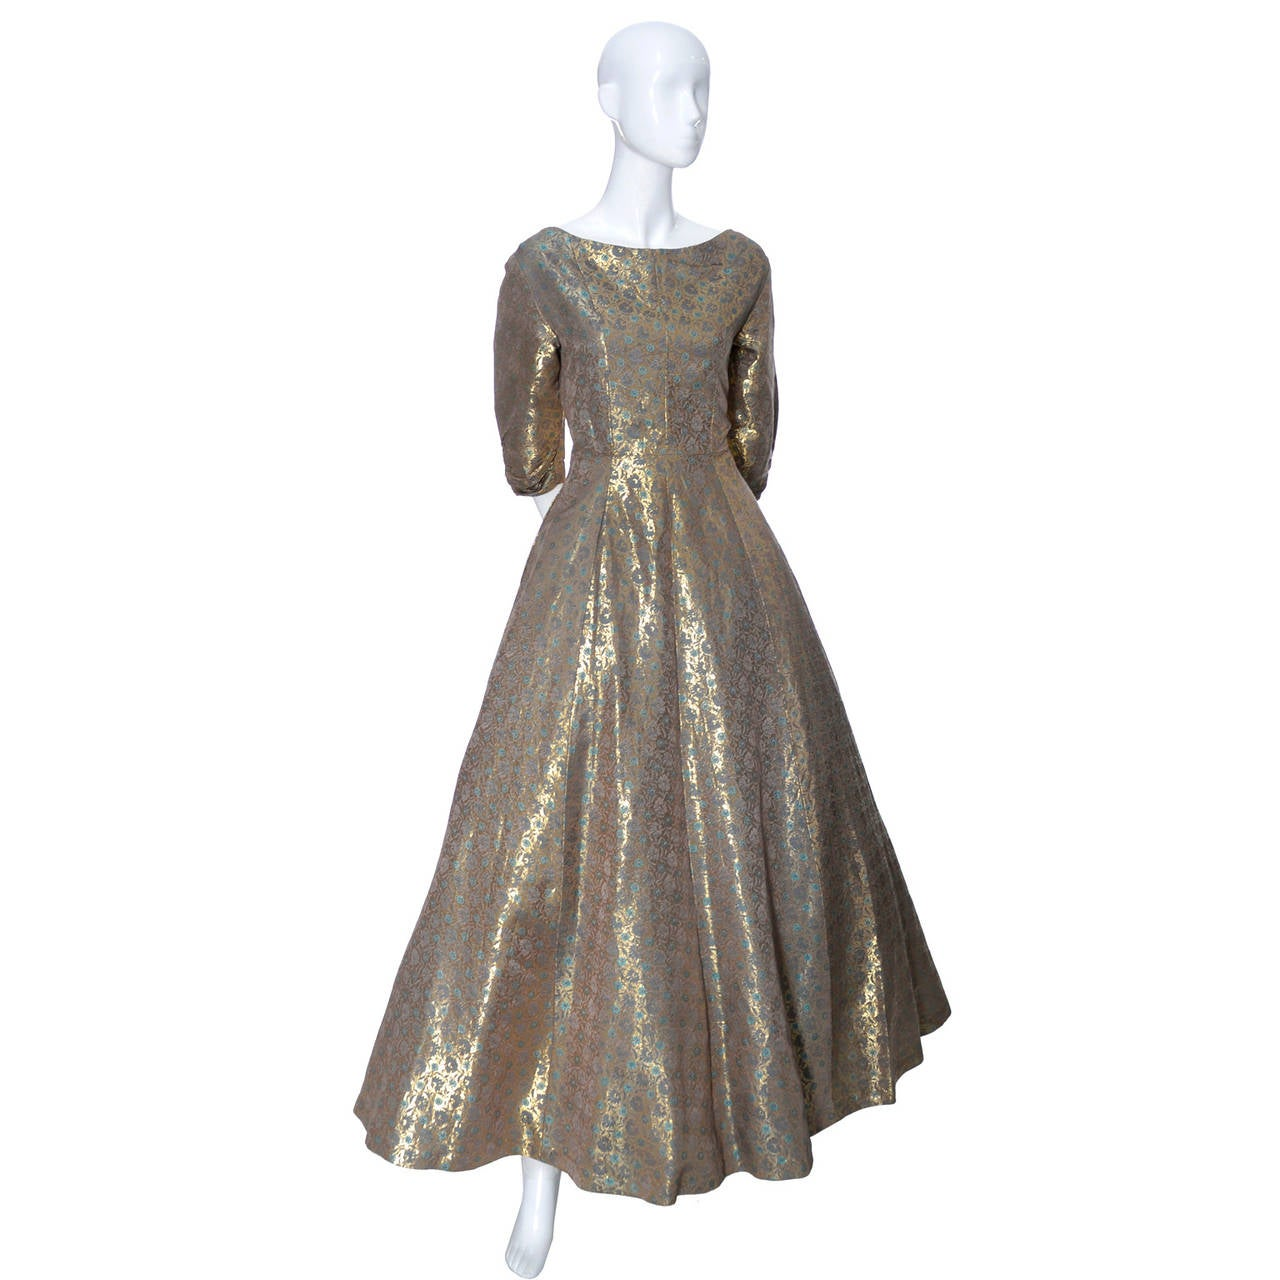 Hattie Carnegie 1950s Vintage Dress Gold Metallic Lame Blue Floral Evening Gown 4